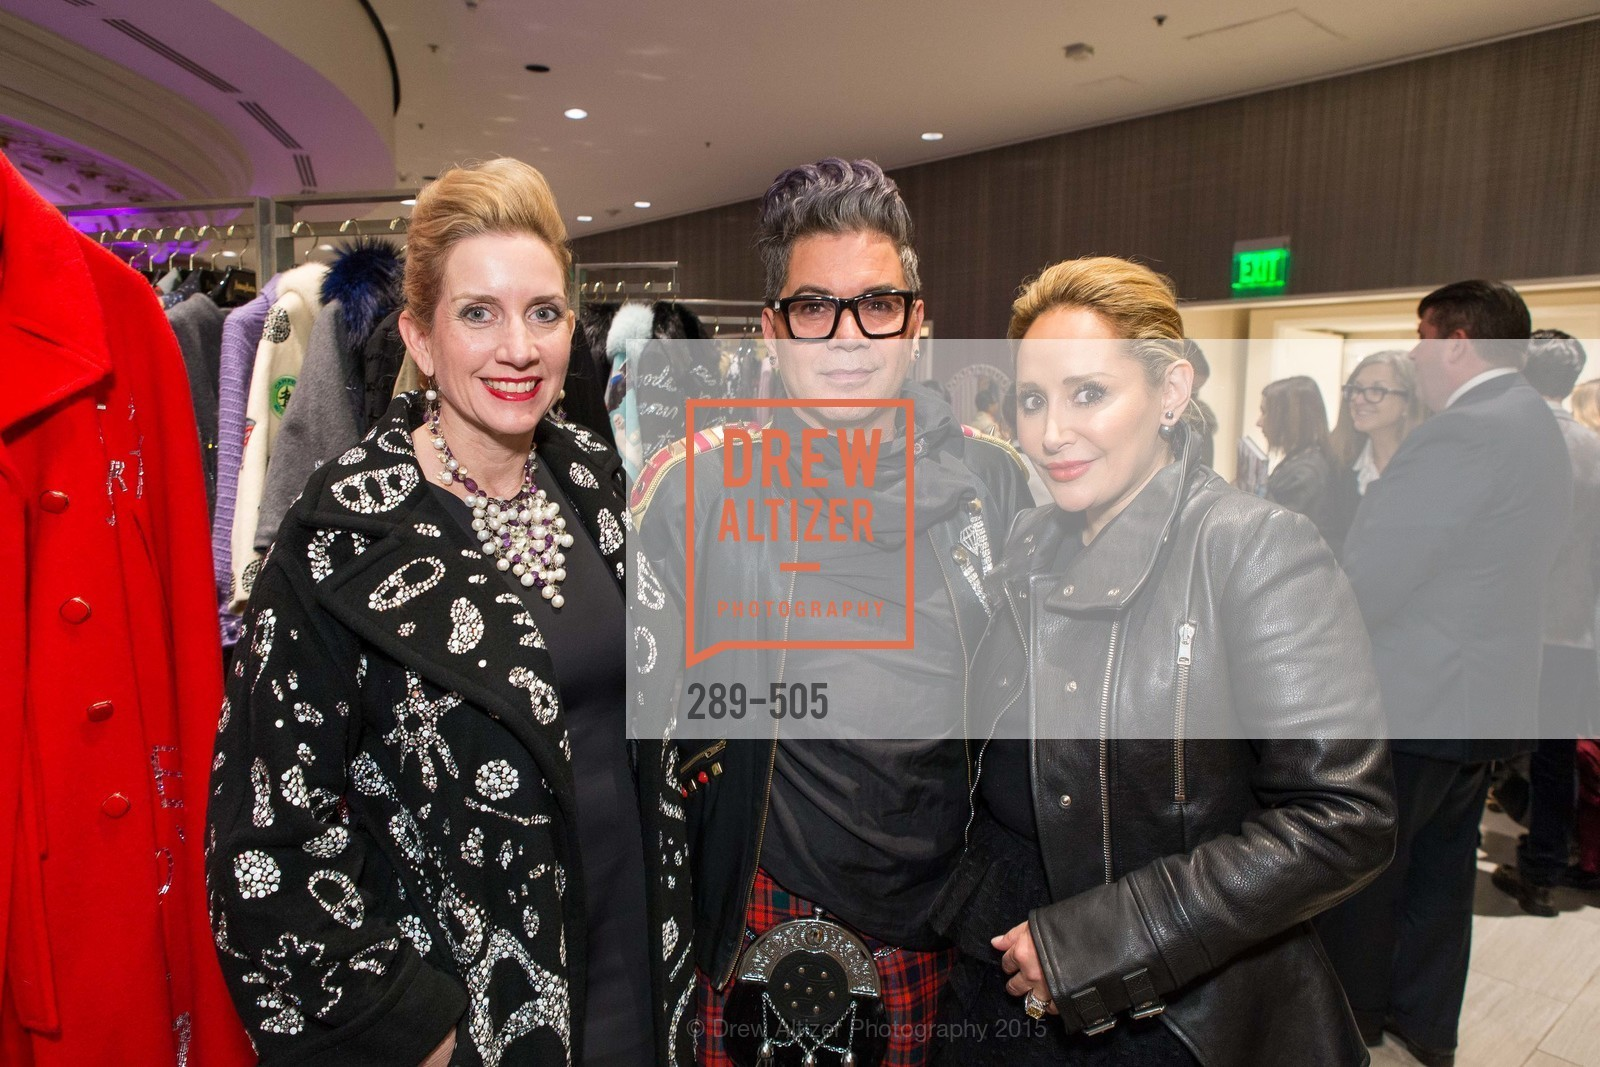 Jennifer Walske, David Reposar, Brenda Zarate, Libertine Cocktail Party at Neiman Marcus, Neiman Marcus, November 10th, 2015,Drew Altizer, Drew Altizer Photography, full-service agency, private events, San Francisco photographer, photographer california